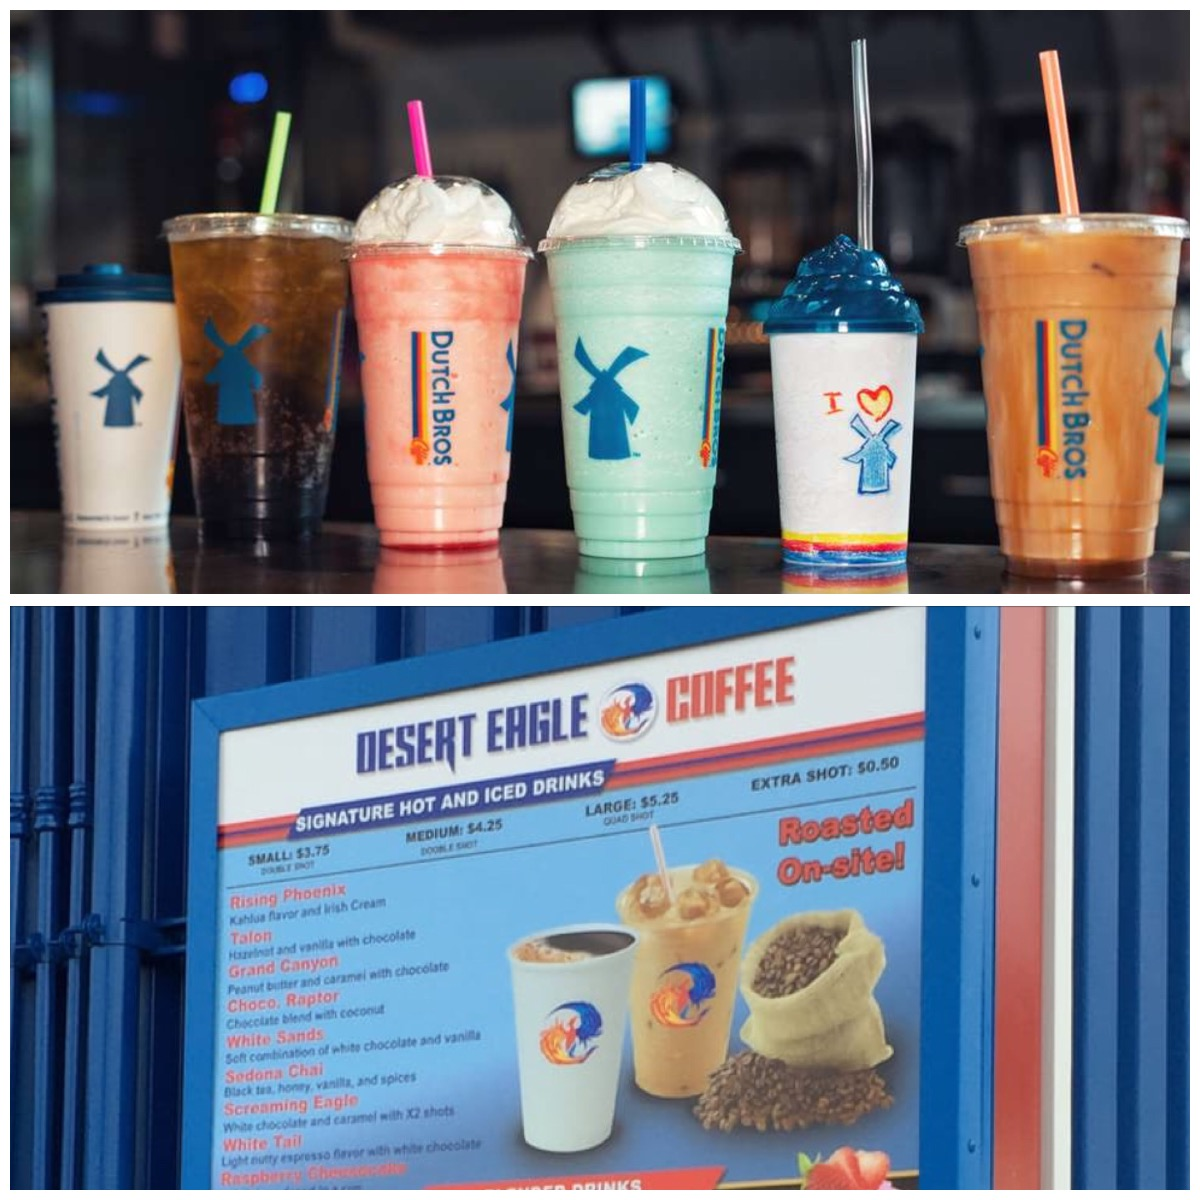 The ultimate choice is your's; Dutch bros or Desert Eagle?